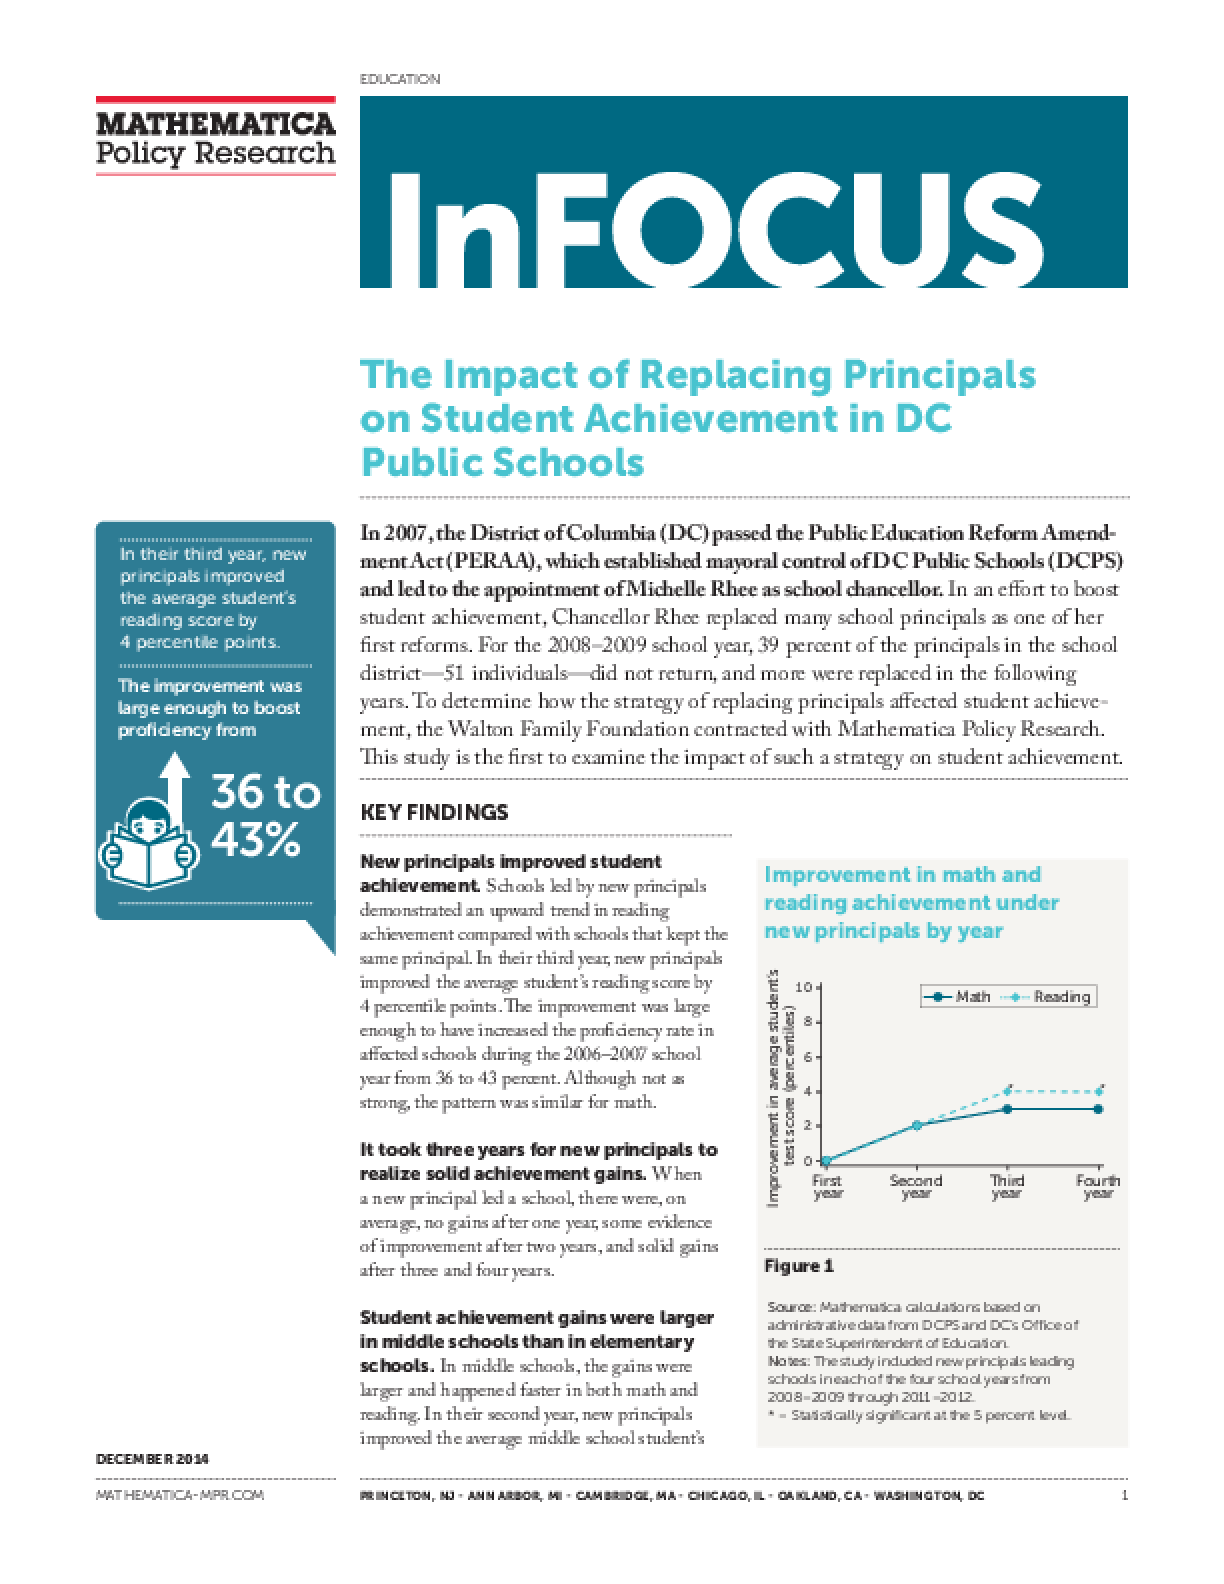 Impact of Replacing Principals on Student Achievement in DC Public Schools, The (Brief)